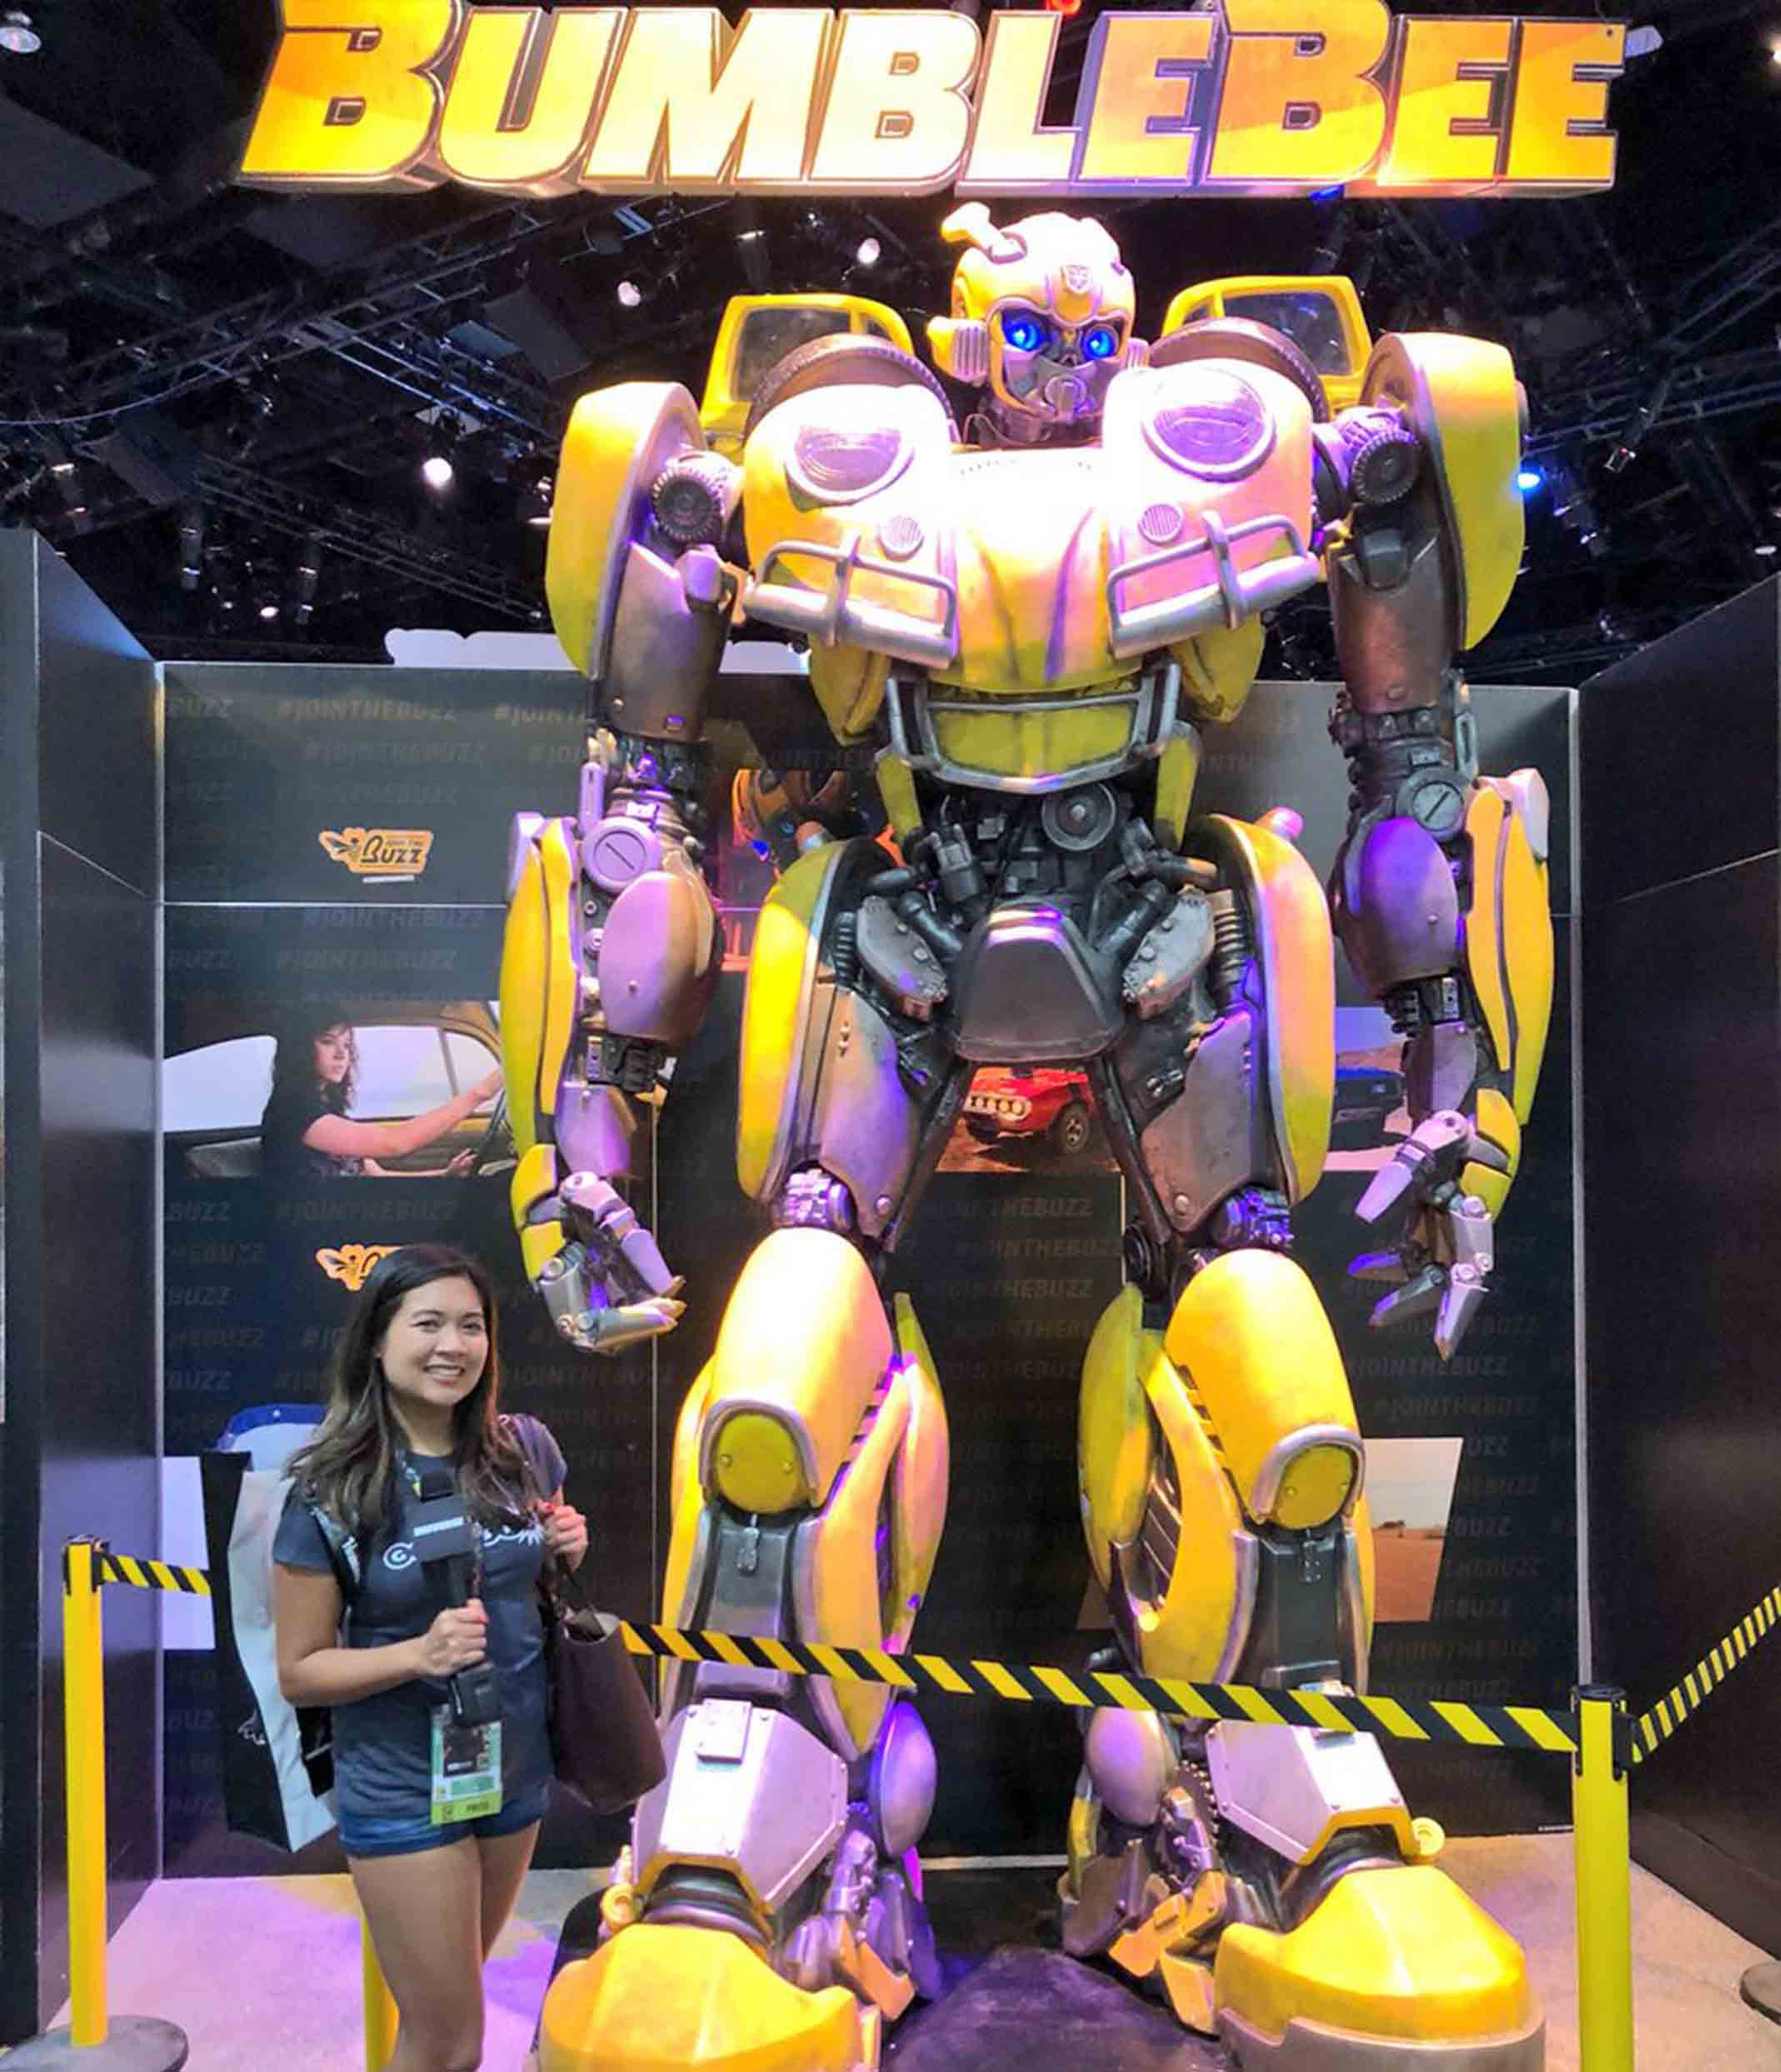 Bumblebee-Paramount Pictures-Designed by Yacine BRINIS-002-3D Printed an painted (pictures taken in San-Diego)